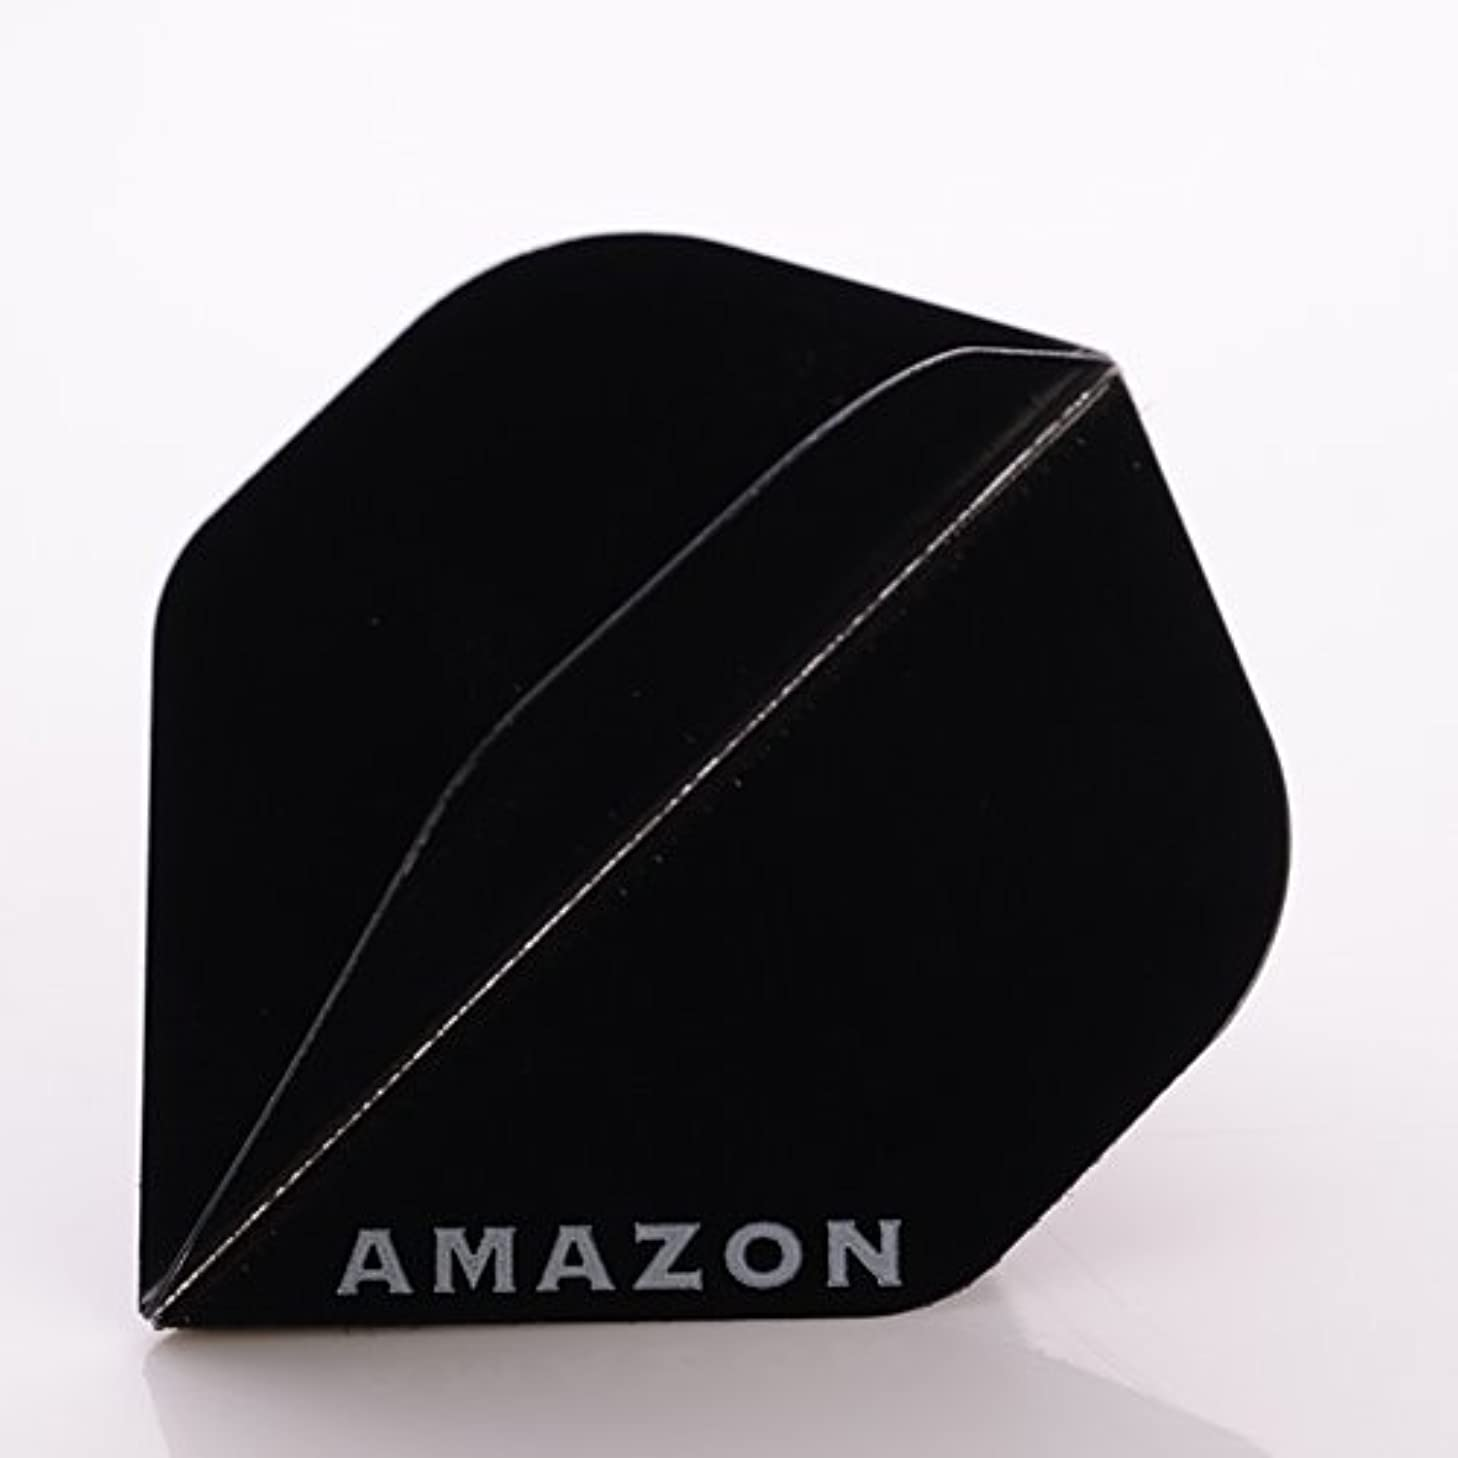 3 x SETS AMAZON DARTS FLIGHTS STANDARD BLACK